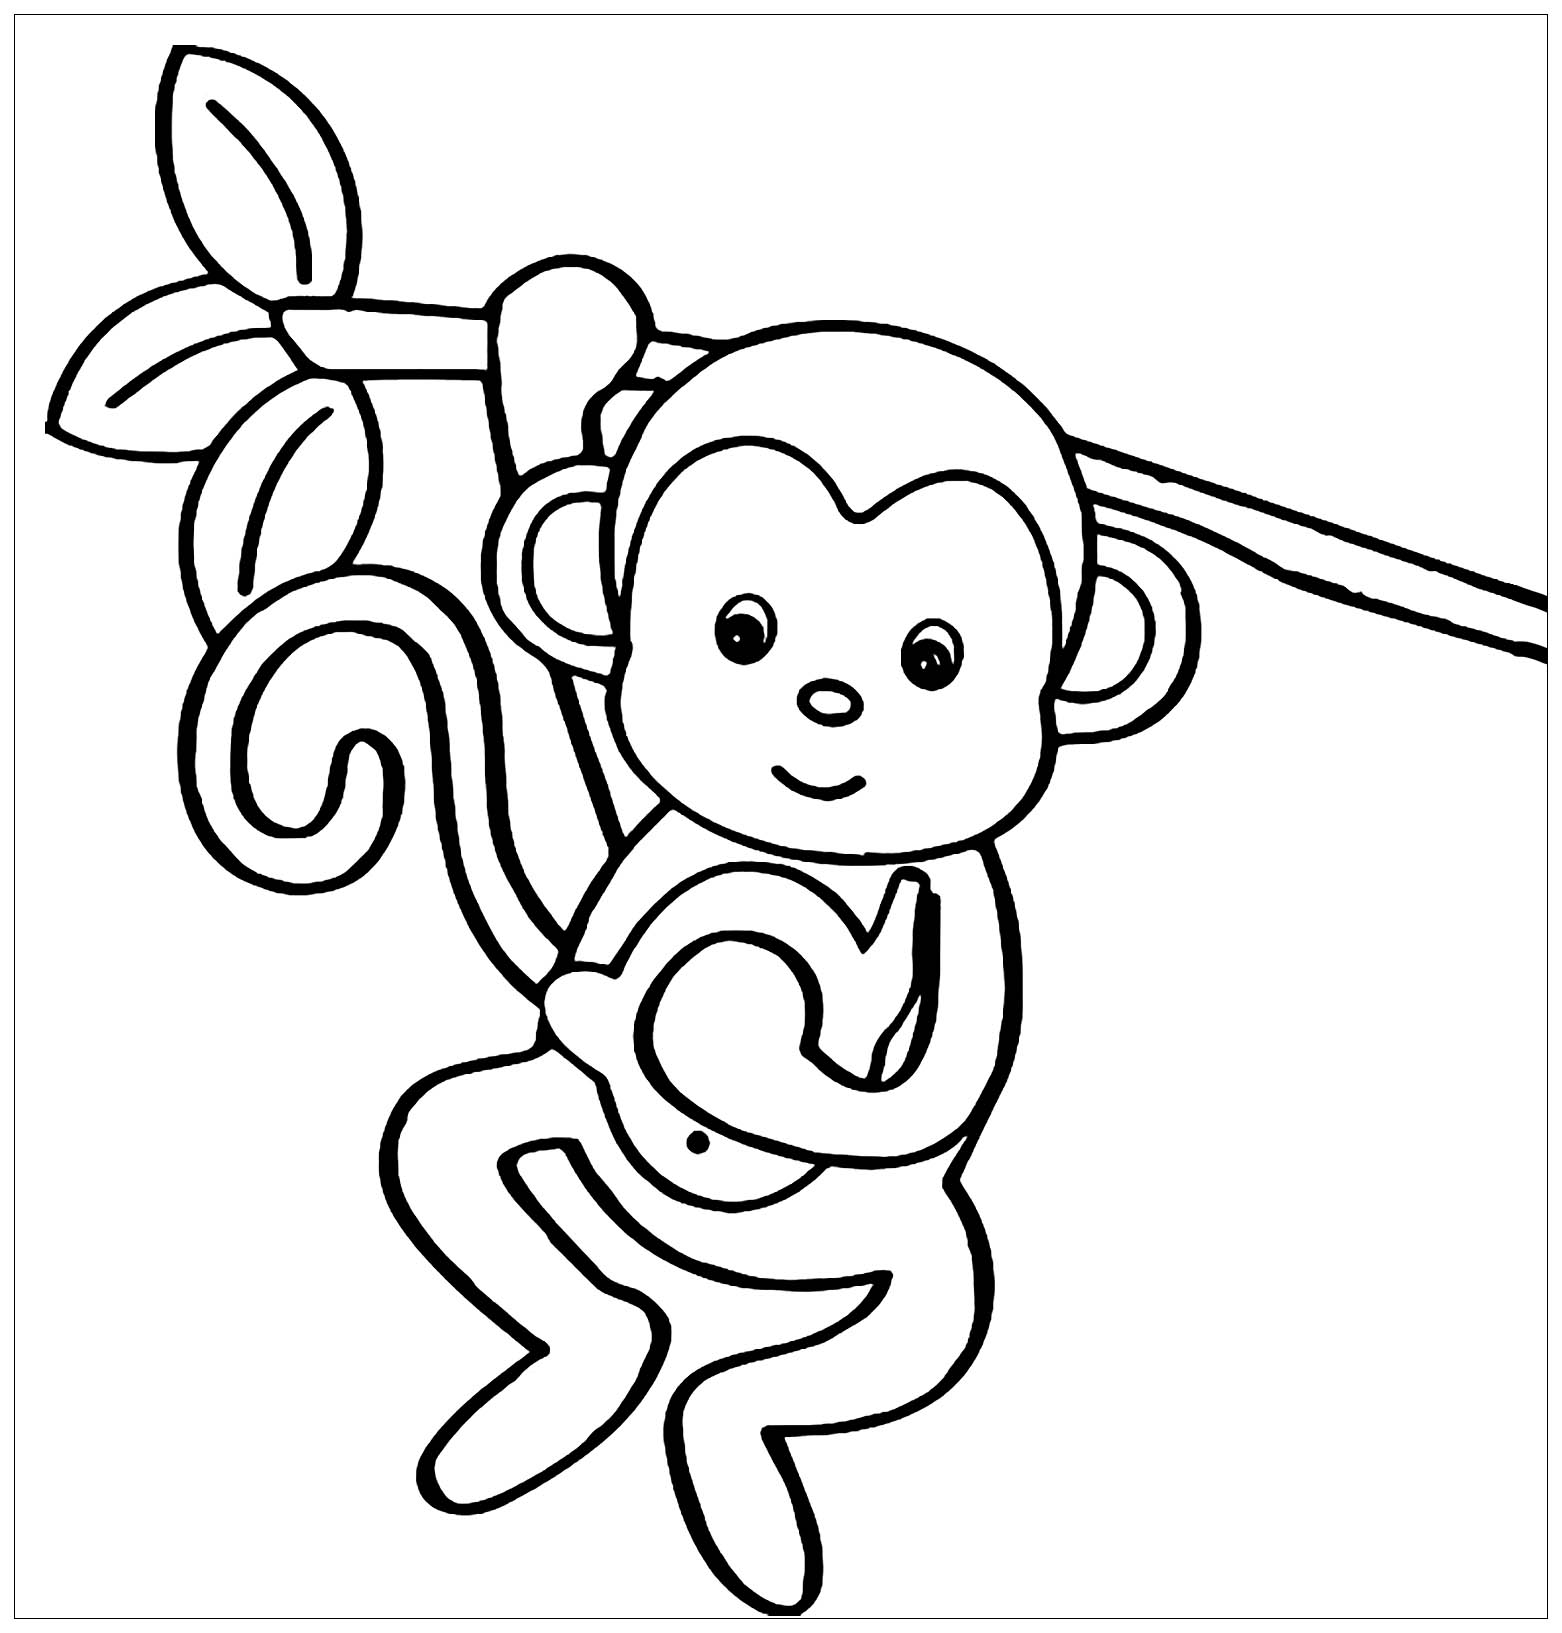 chimpanzee pictures to color monkeys to color for children monkeys kids coloring pages to chimpanzee color pictures